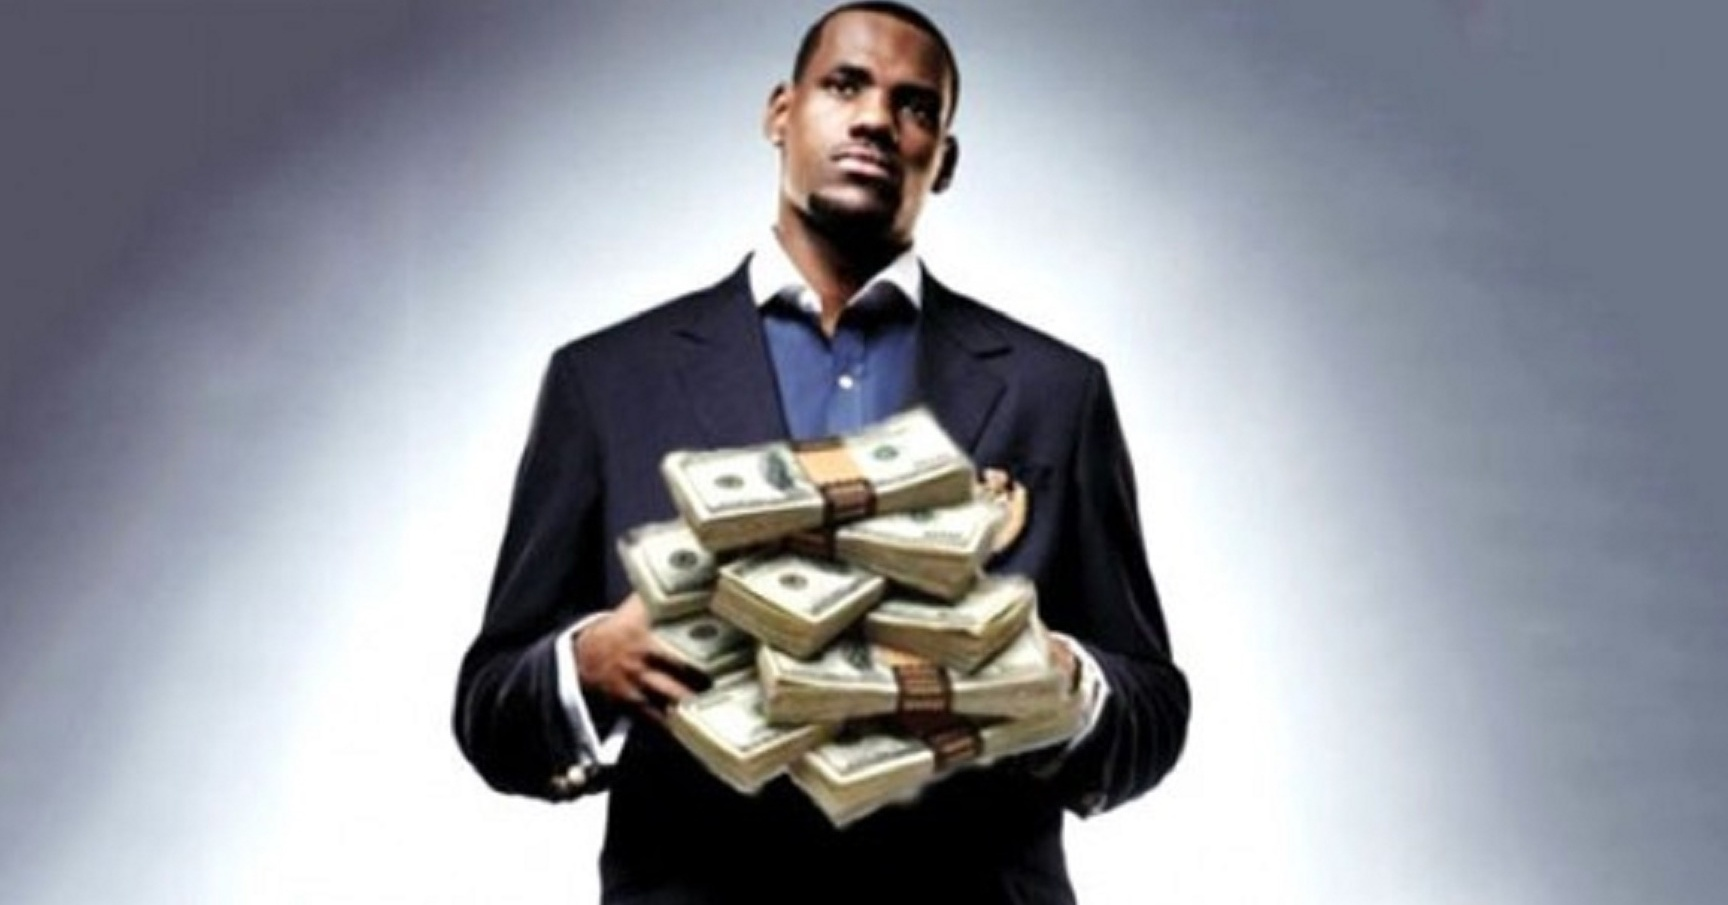 LeBron James turned down a $10 million shoe contract from ...